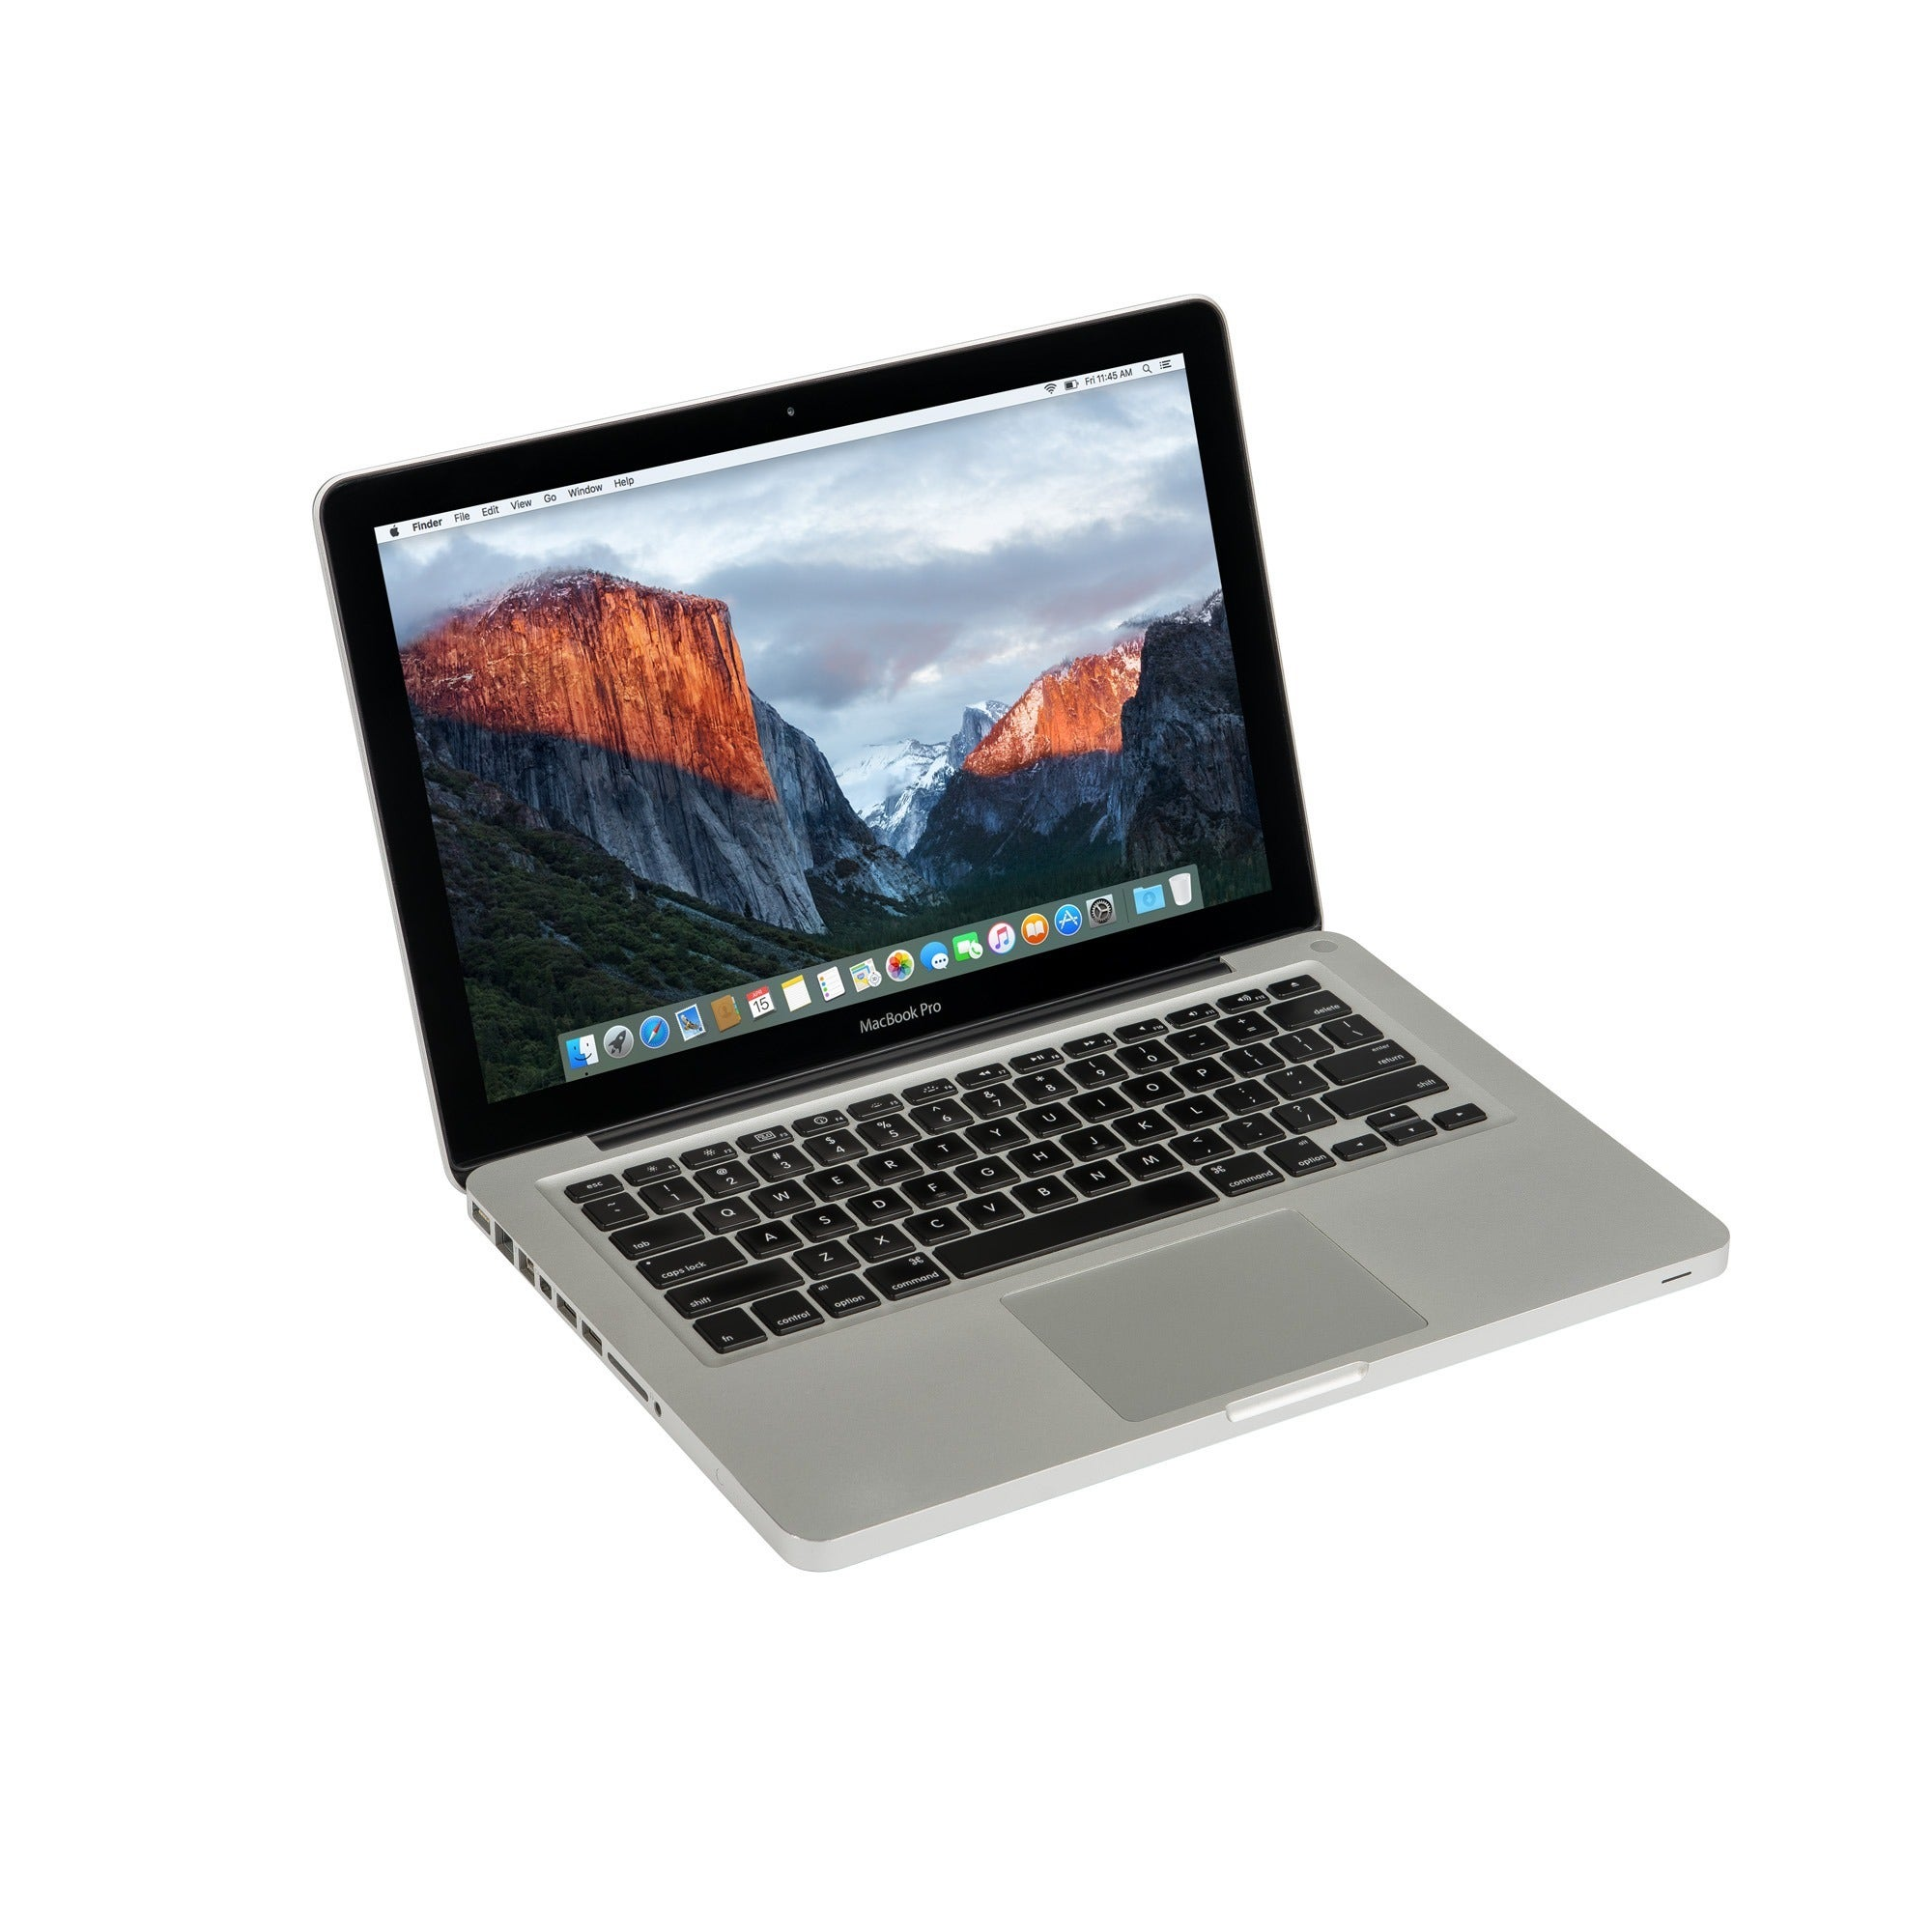 "Apple MacBook Pro 15.4"" Laptop Intel Core i7 2.0 Ghz, 500..."